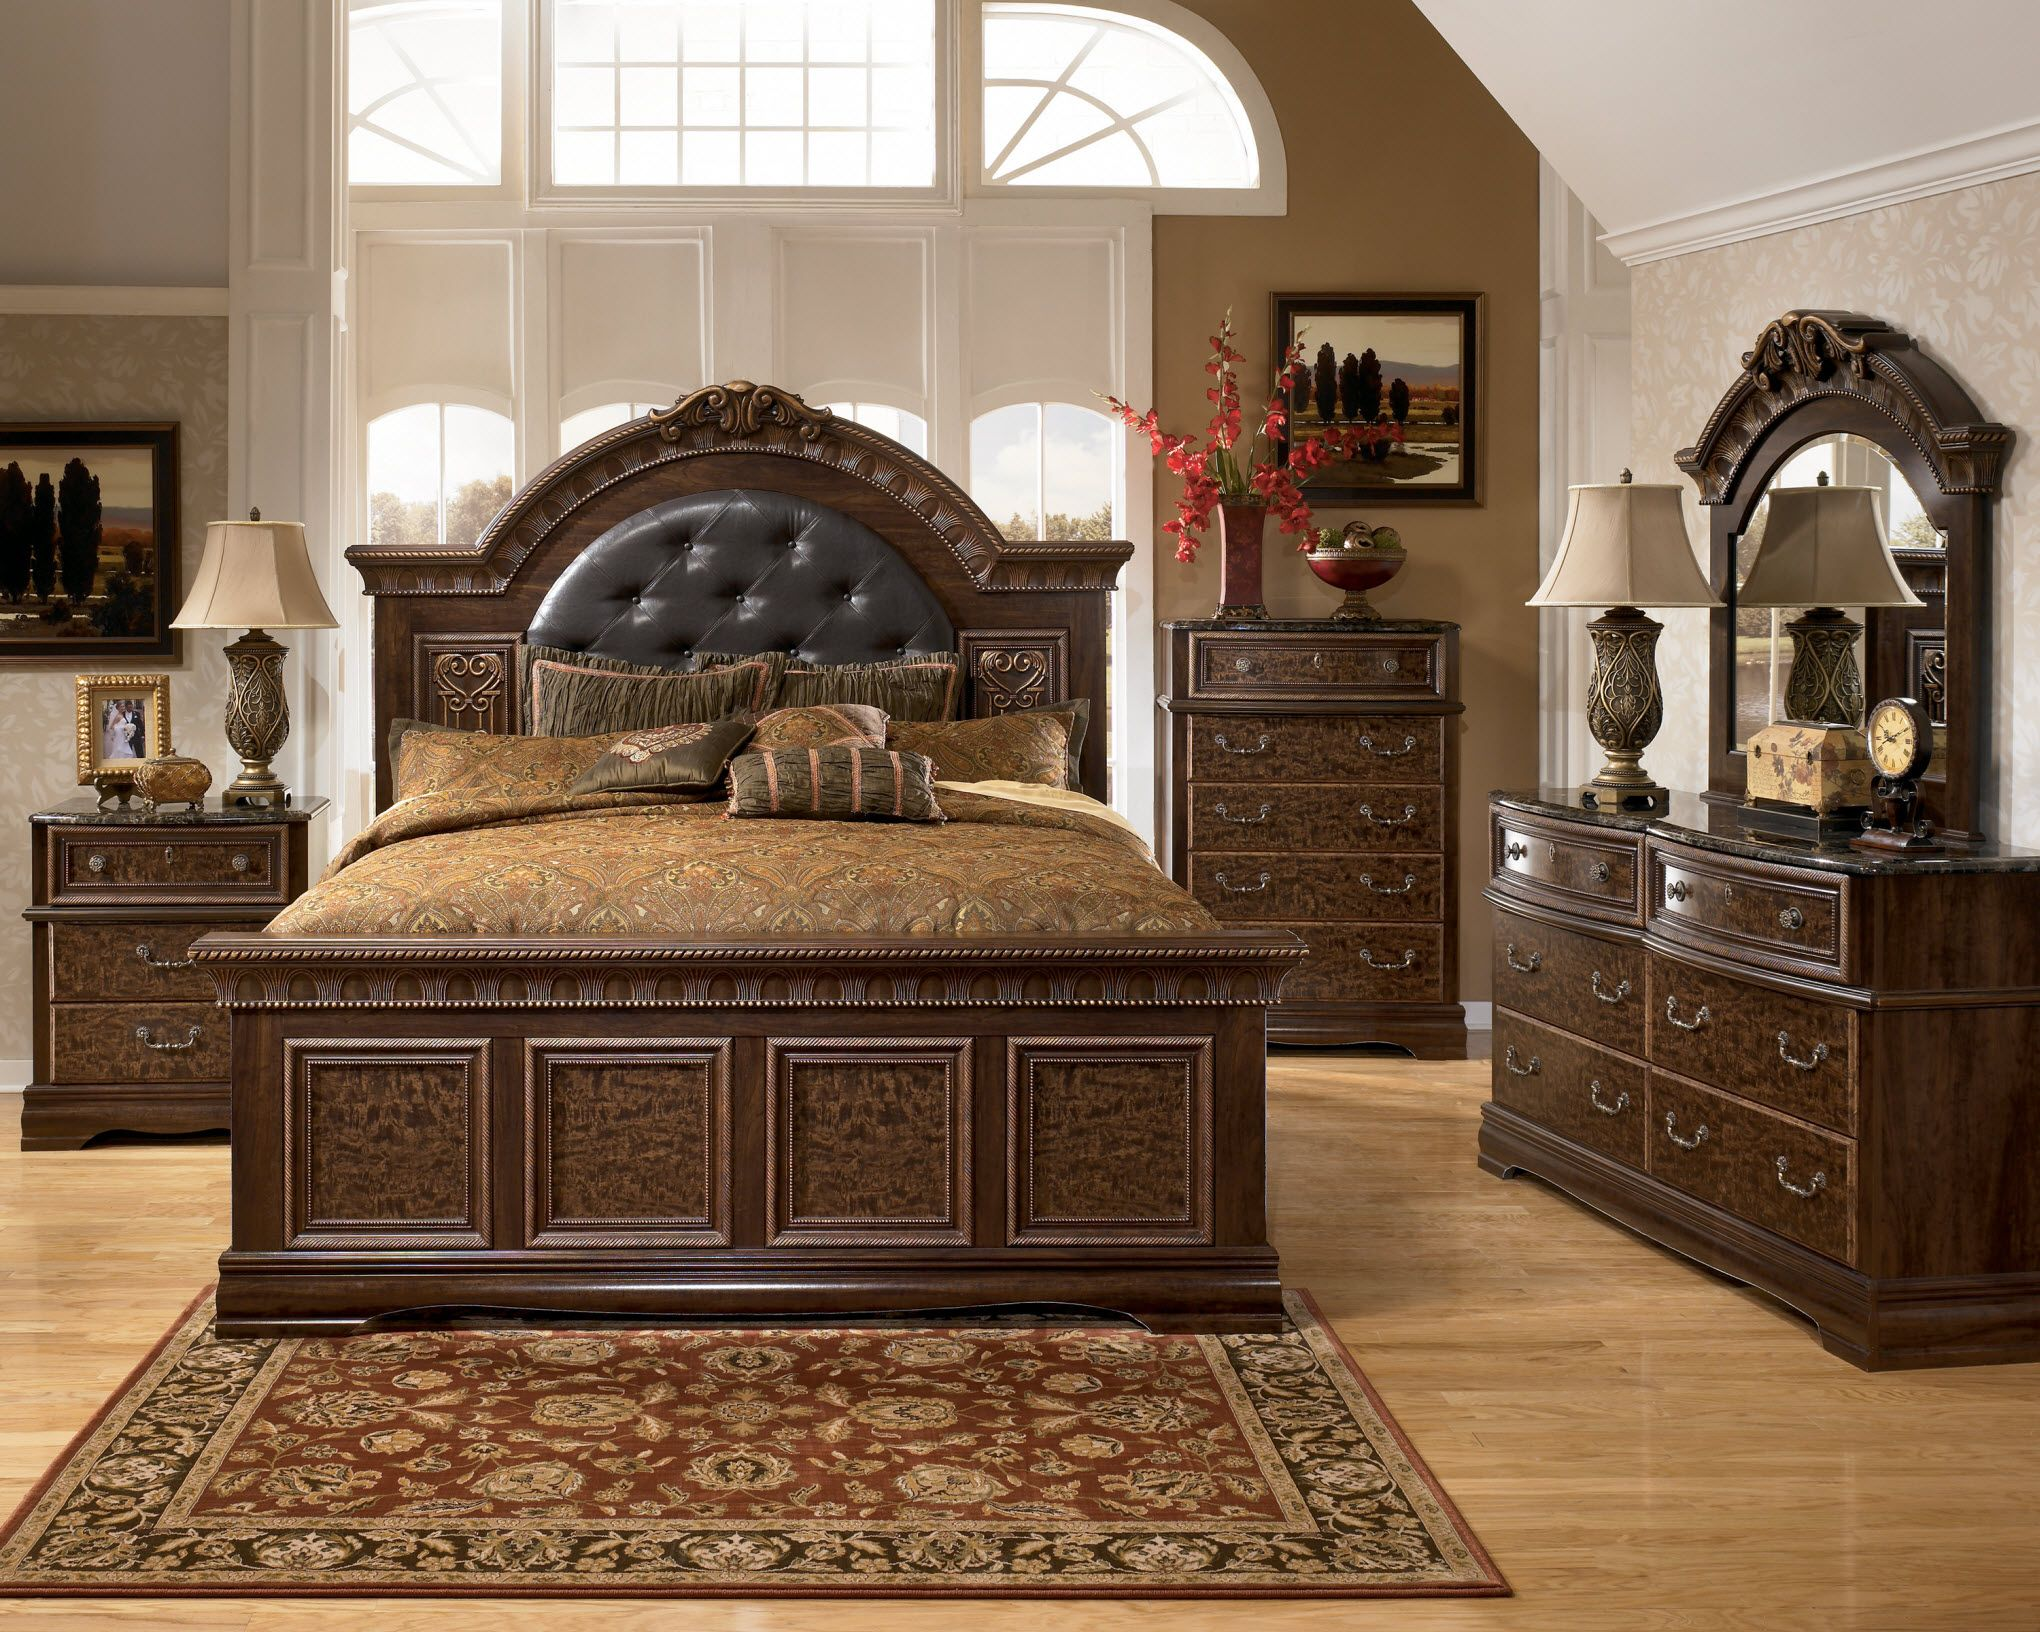 Elegant Ashley Bedroom Furniture For Your Many Years To Come ...